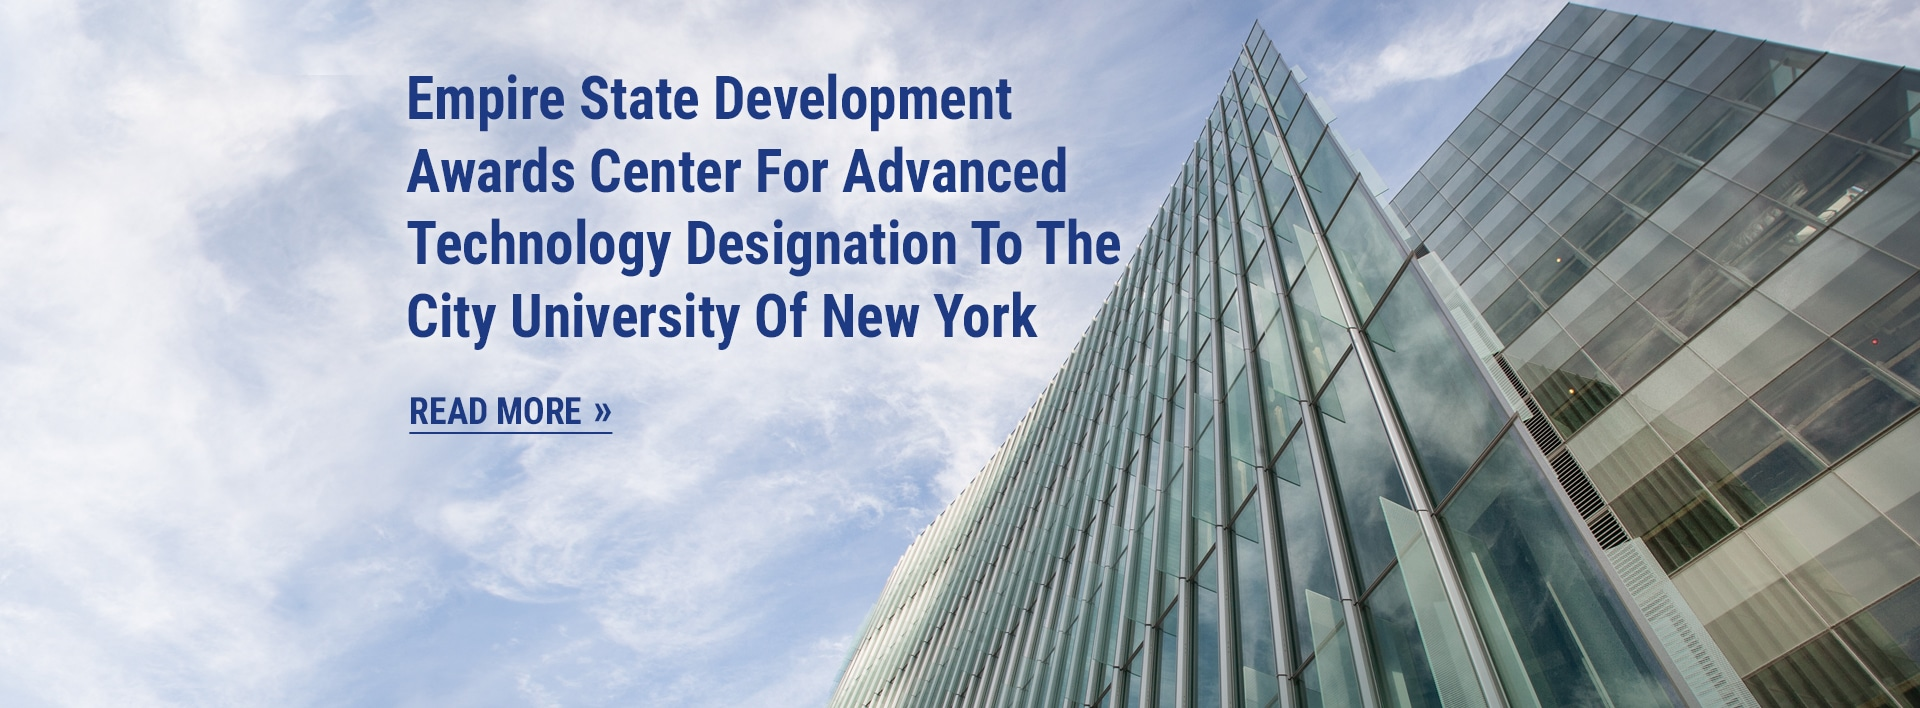 Empire State Development Awards Center For Advanced Technology Designation To The City University Of New York